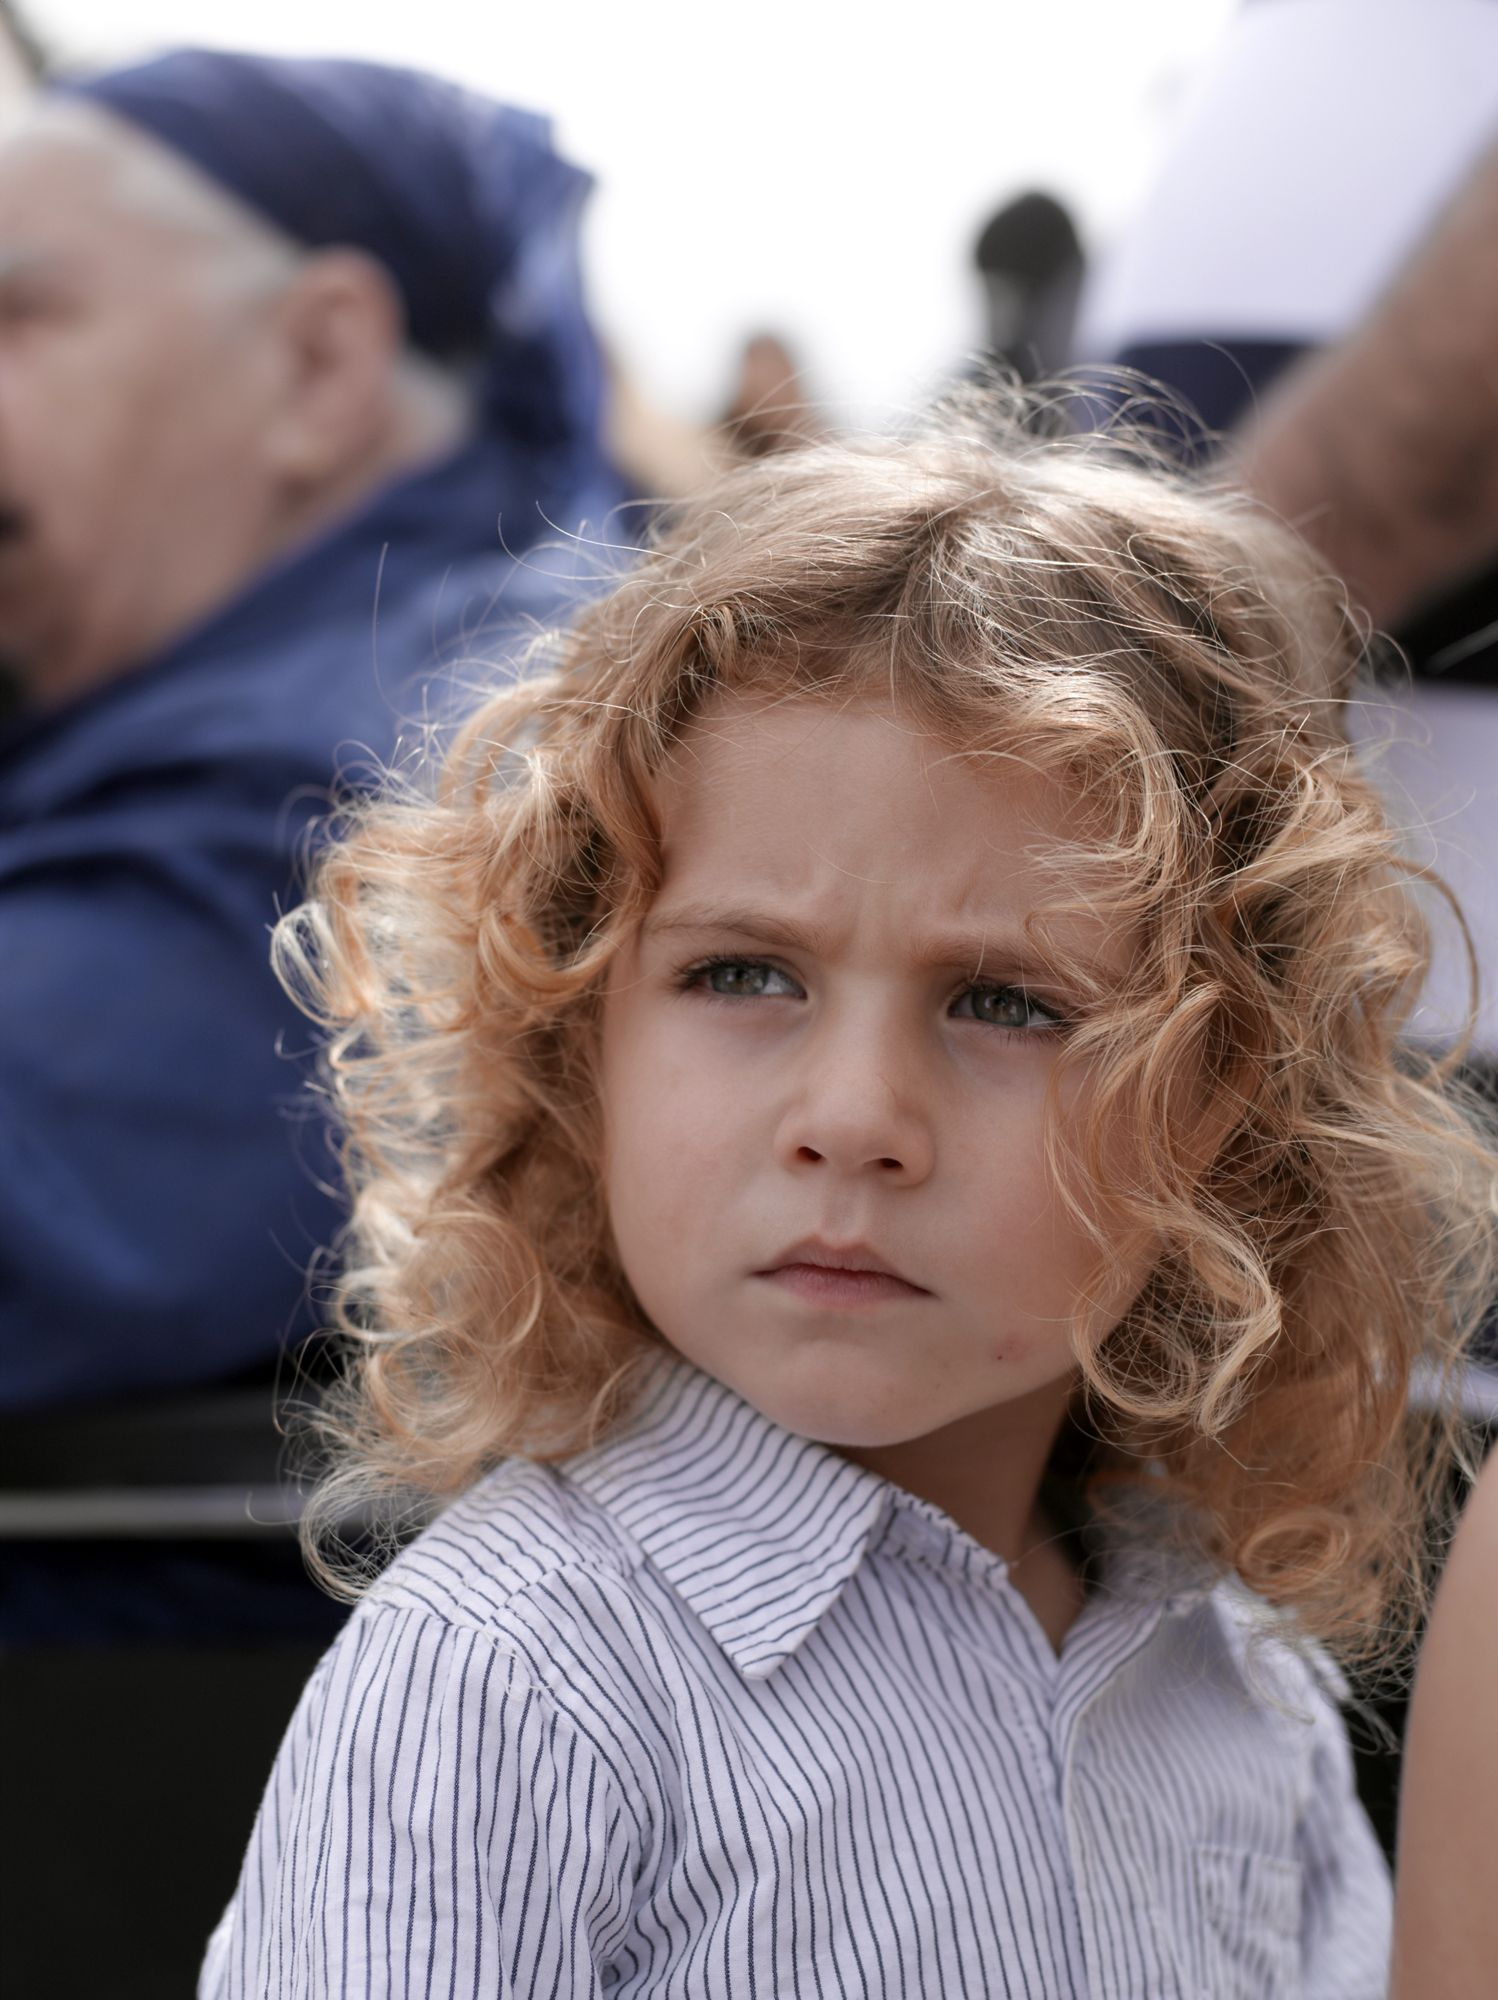 a young jewish israeli boy with long, uncut hair, 2012